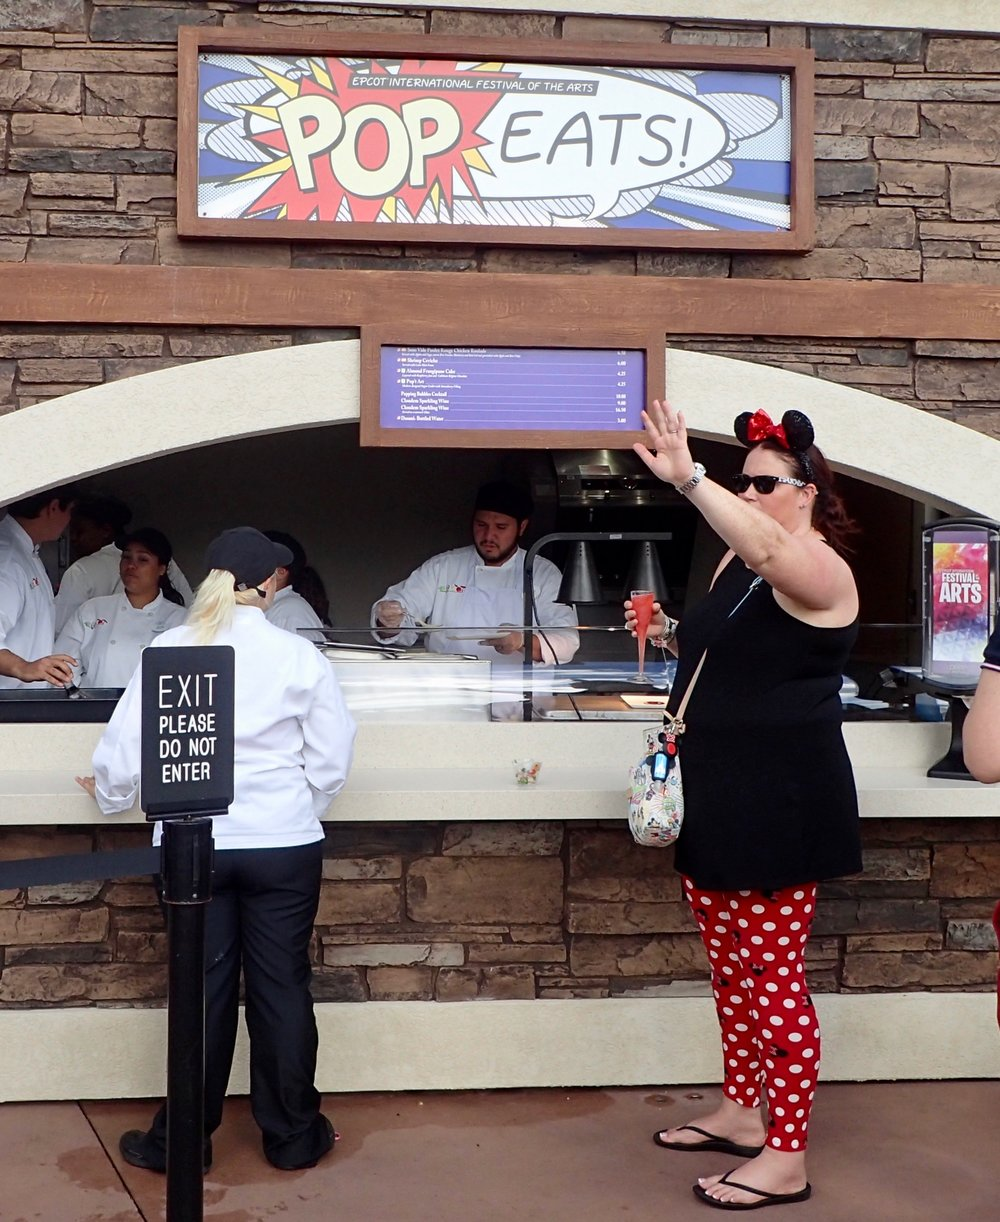 Magic Water, Living Statues, Pork Roulade – 7 Highlights at the Epcot Festival of the Arts 2018 food studio